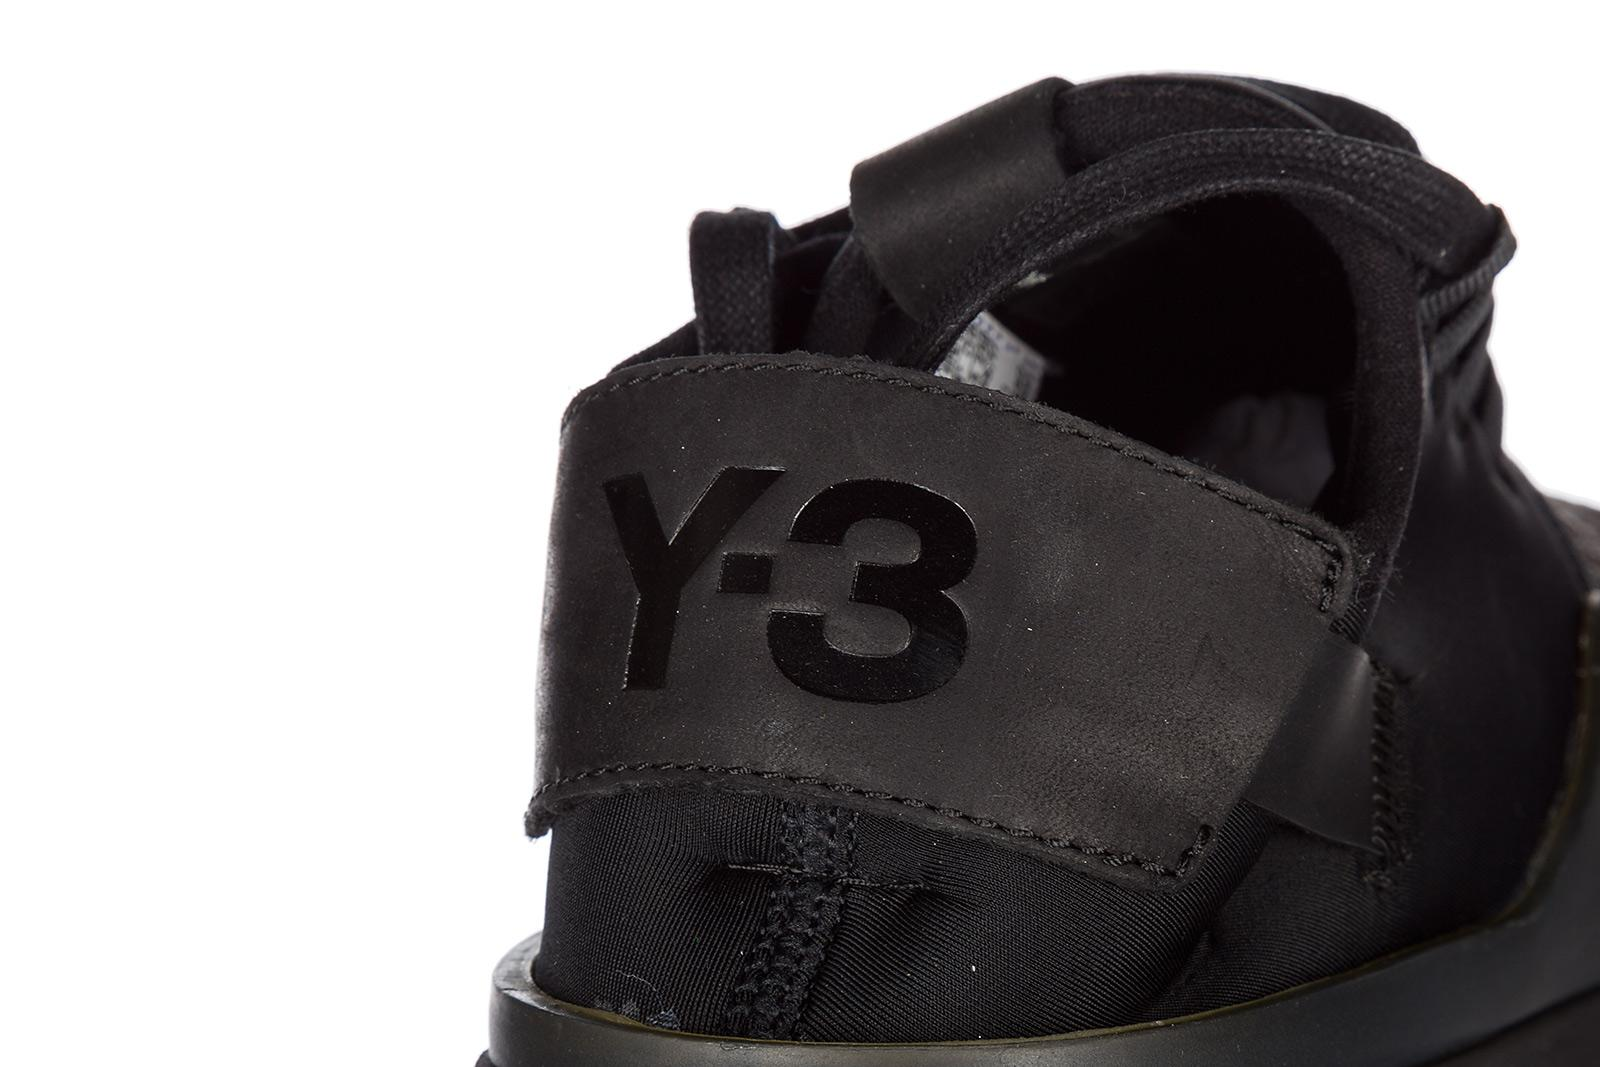 e31eb8d51152a Y-3 Shoes Trainers Sneakers Yohji Yamamoto Ayero in Black for Men - Lyst